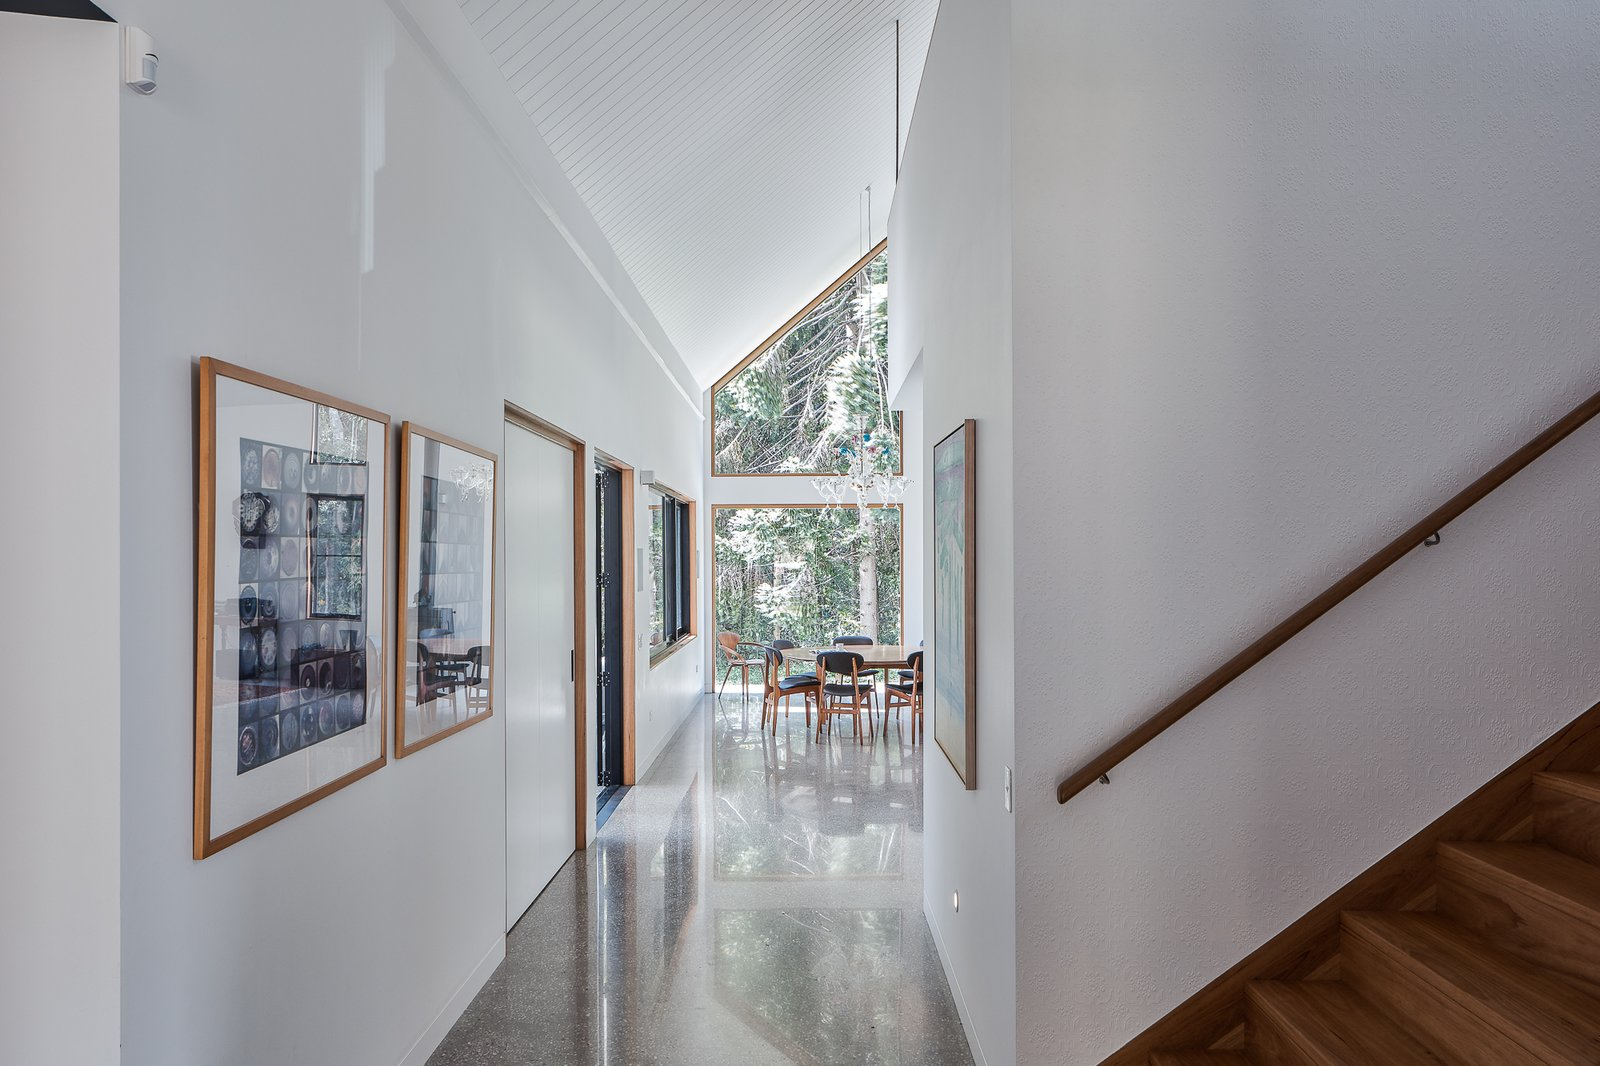 Hallway and Concrete Floor Plasterboard internal walls.  Photo 11 of 19 in Two Barn-Like Volumes Make Up This Low-Maintenance Australian Home